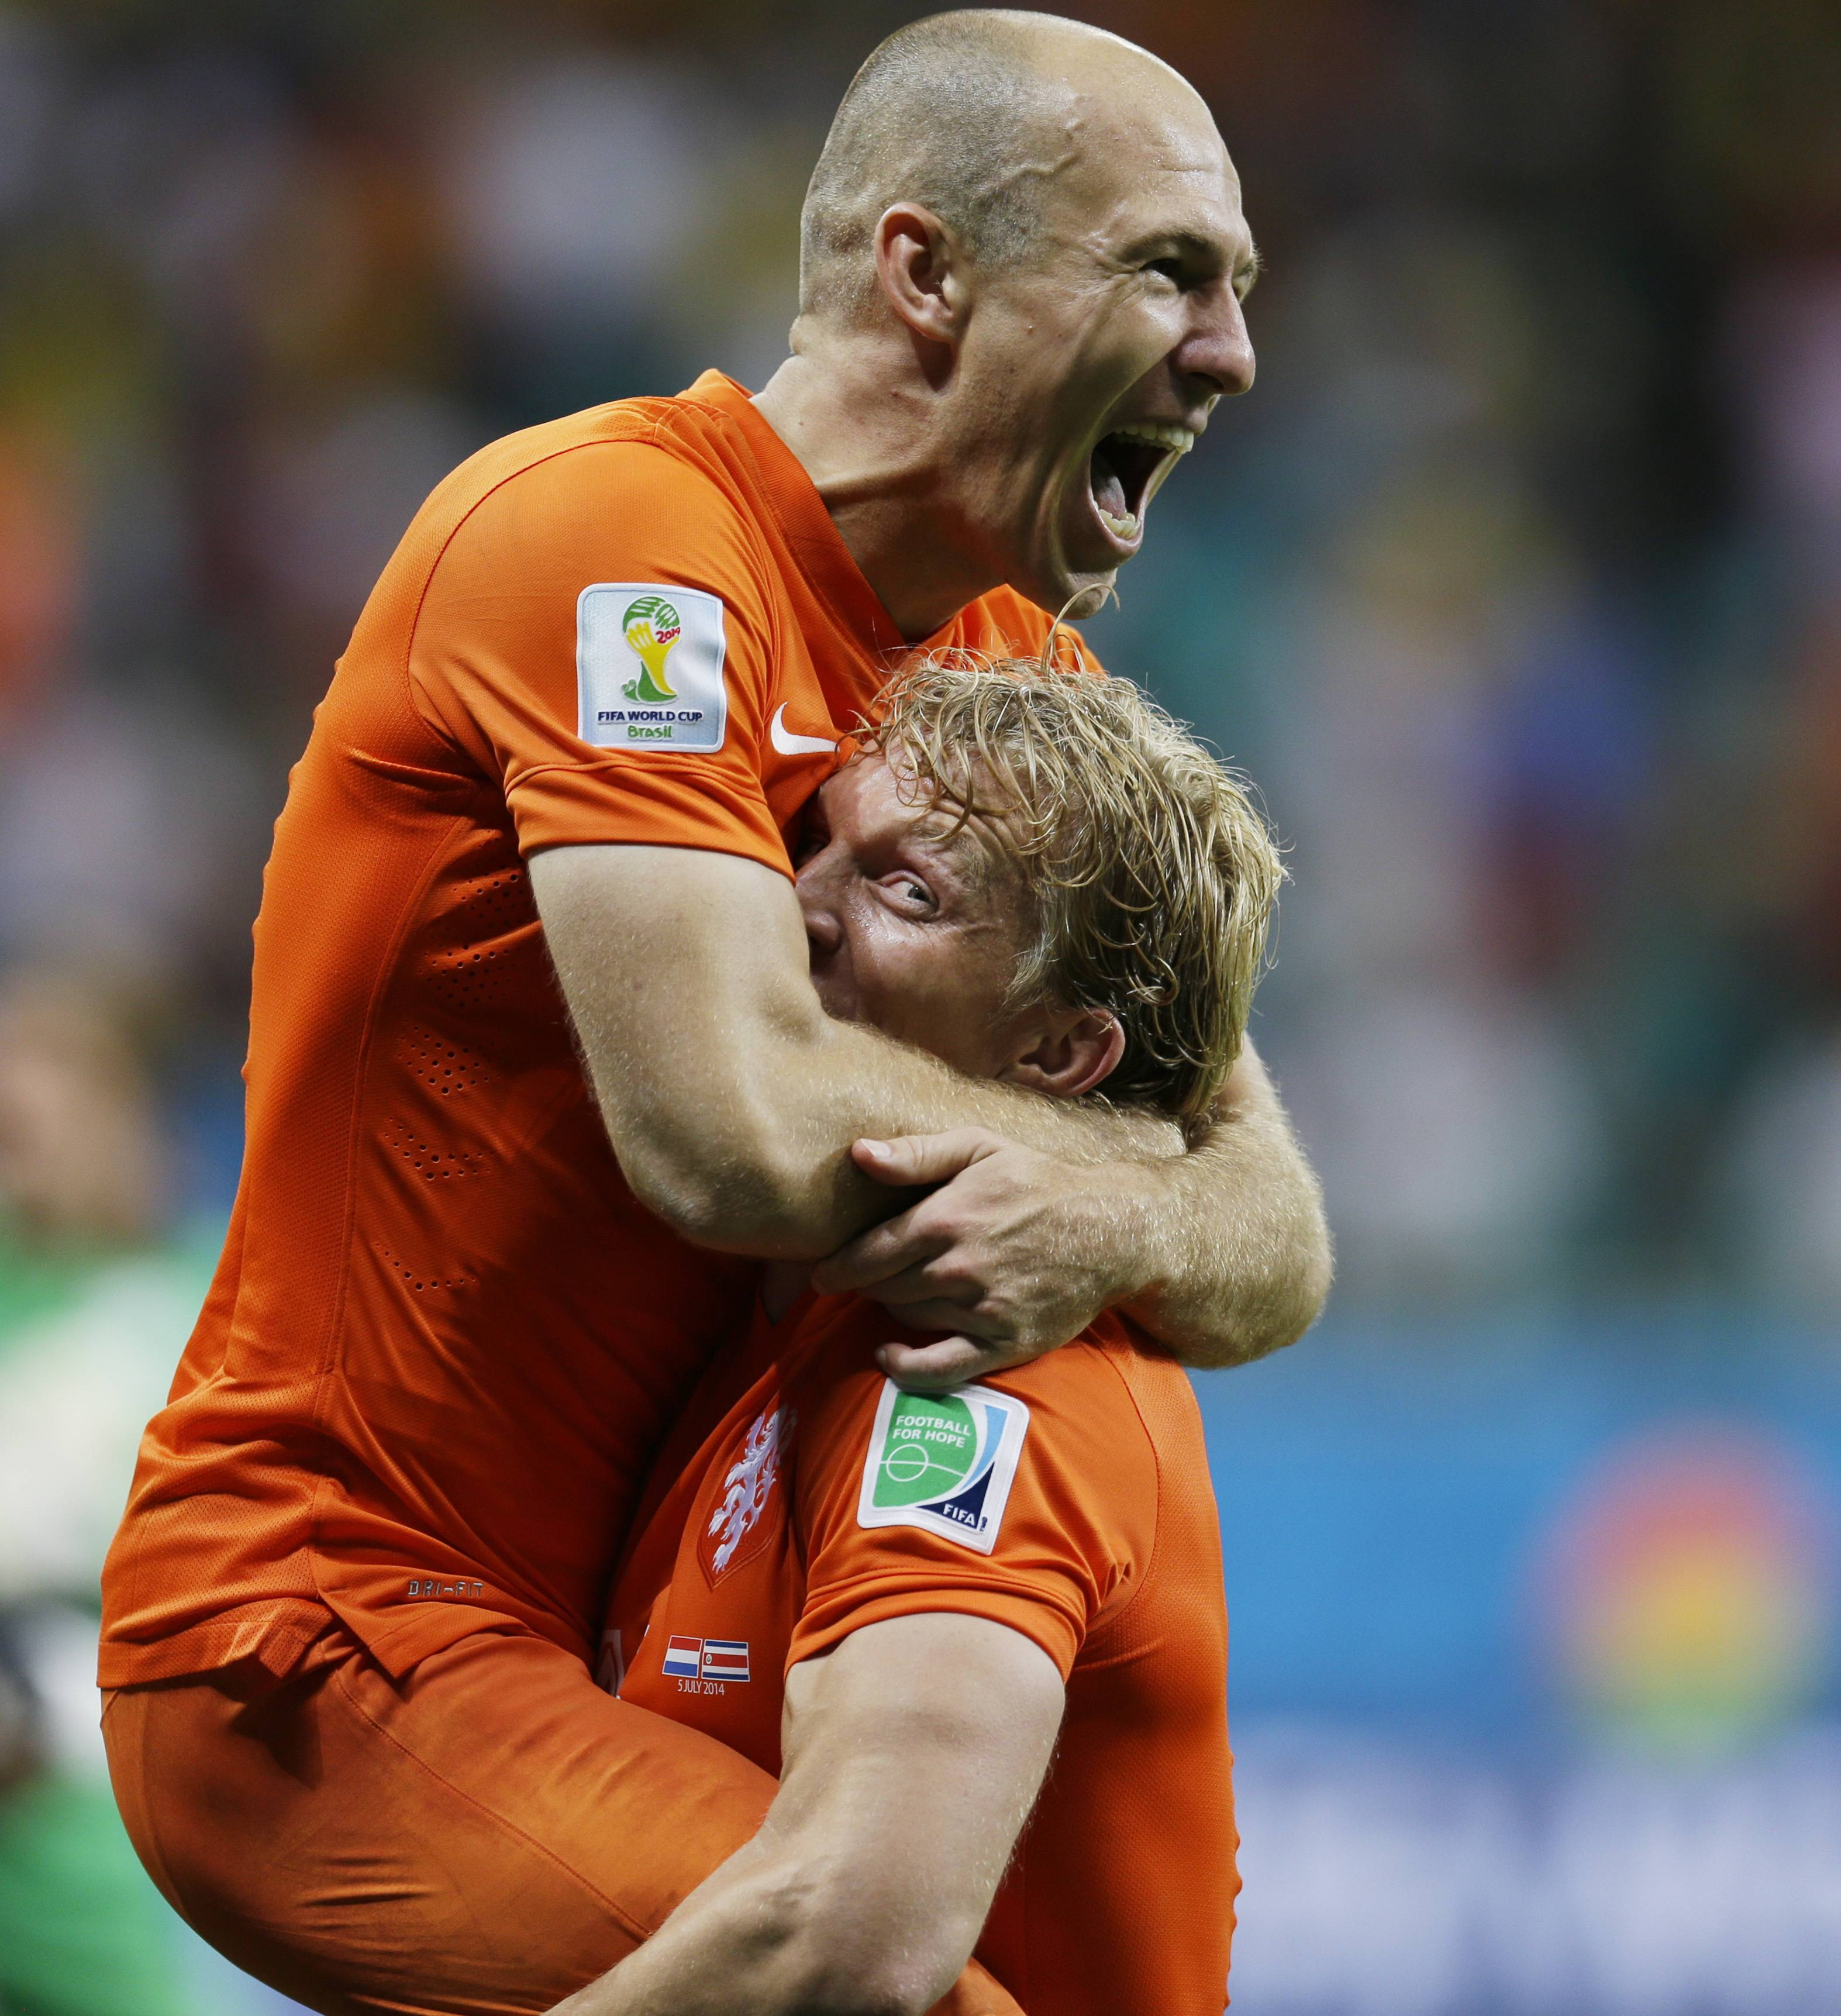 Netherlands' Arjen Robben celebrates with Dirk Kuyt after the Netherlands defeated Costa Rica 4-3 in a penalty shootout after a 0-0 tie during the World Cup quarterfinal soccer match at the Arena Fonte Nova in Salvador, Brazil, Saturday, July 5, 2014.